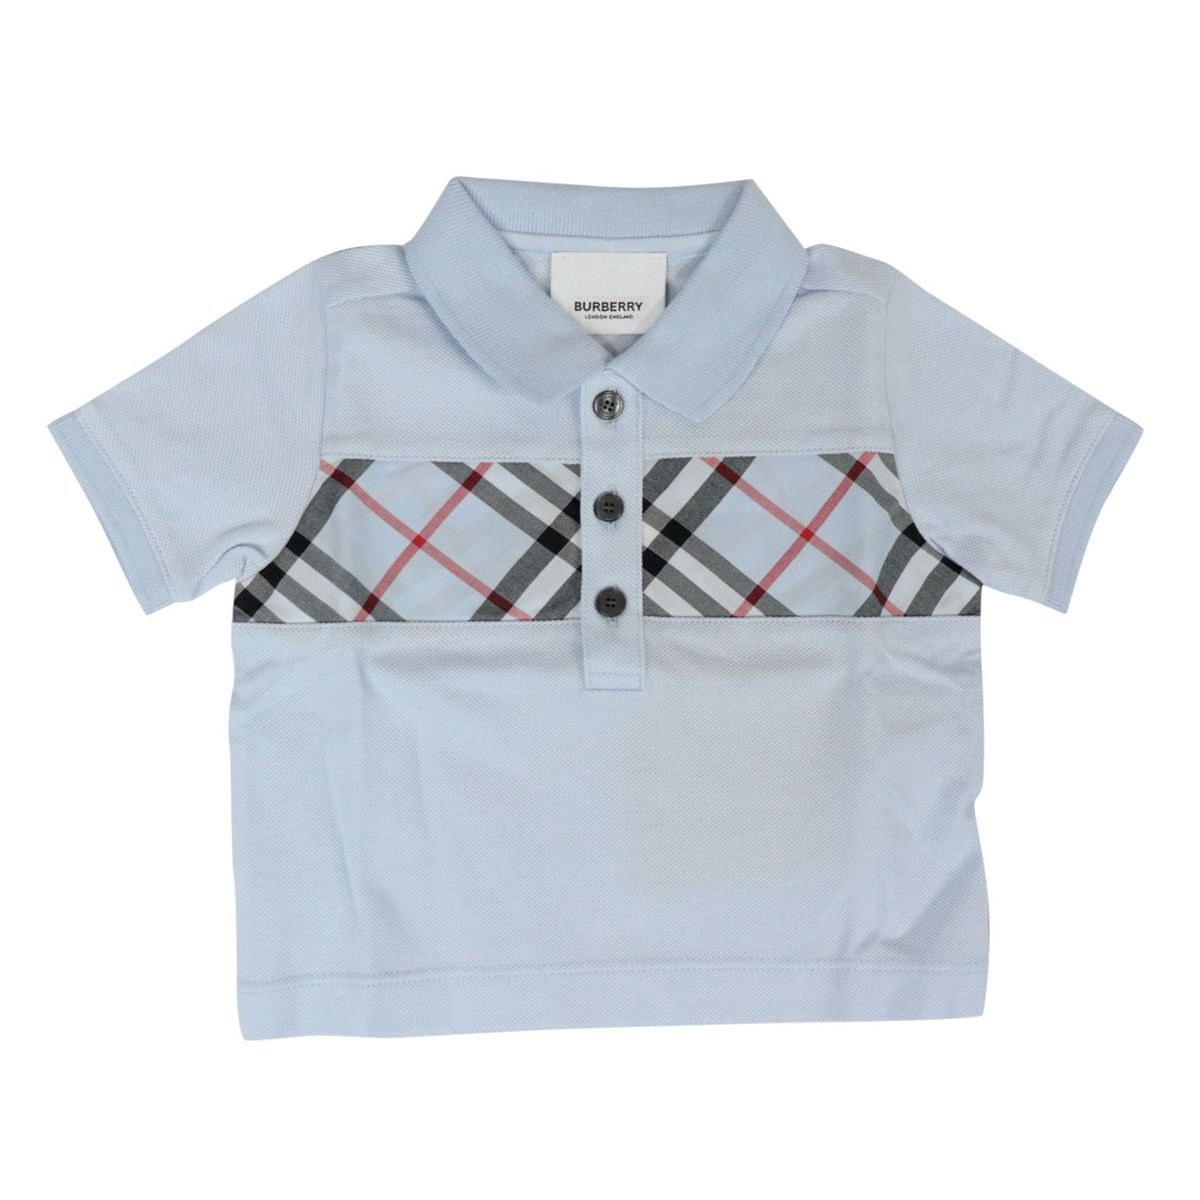 Mini Jeff polo shirt in cotton pique with check patterned front band Light blue Burberry